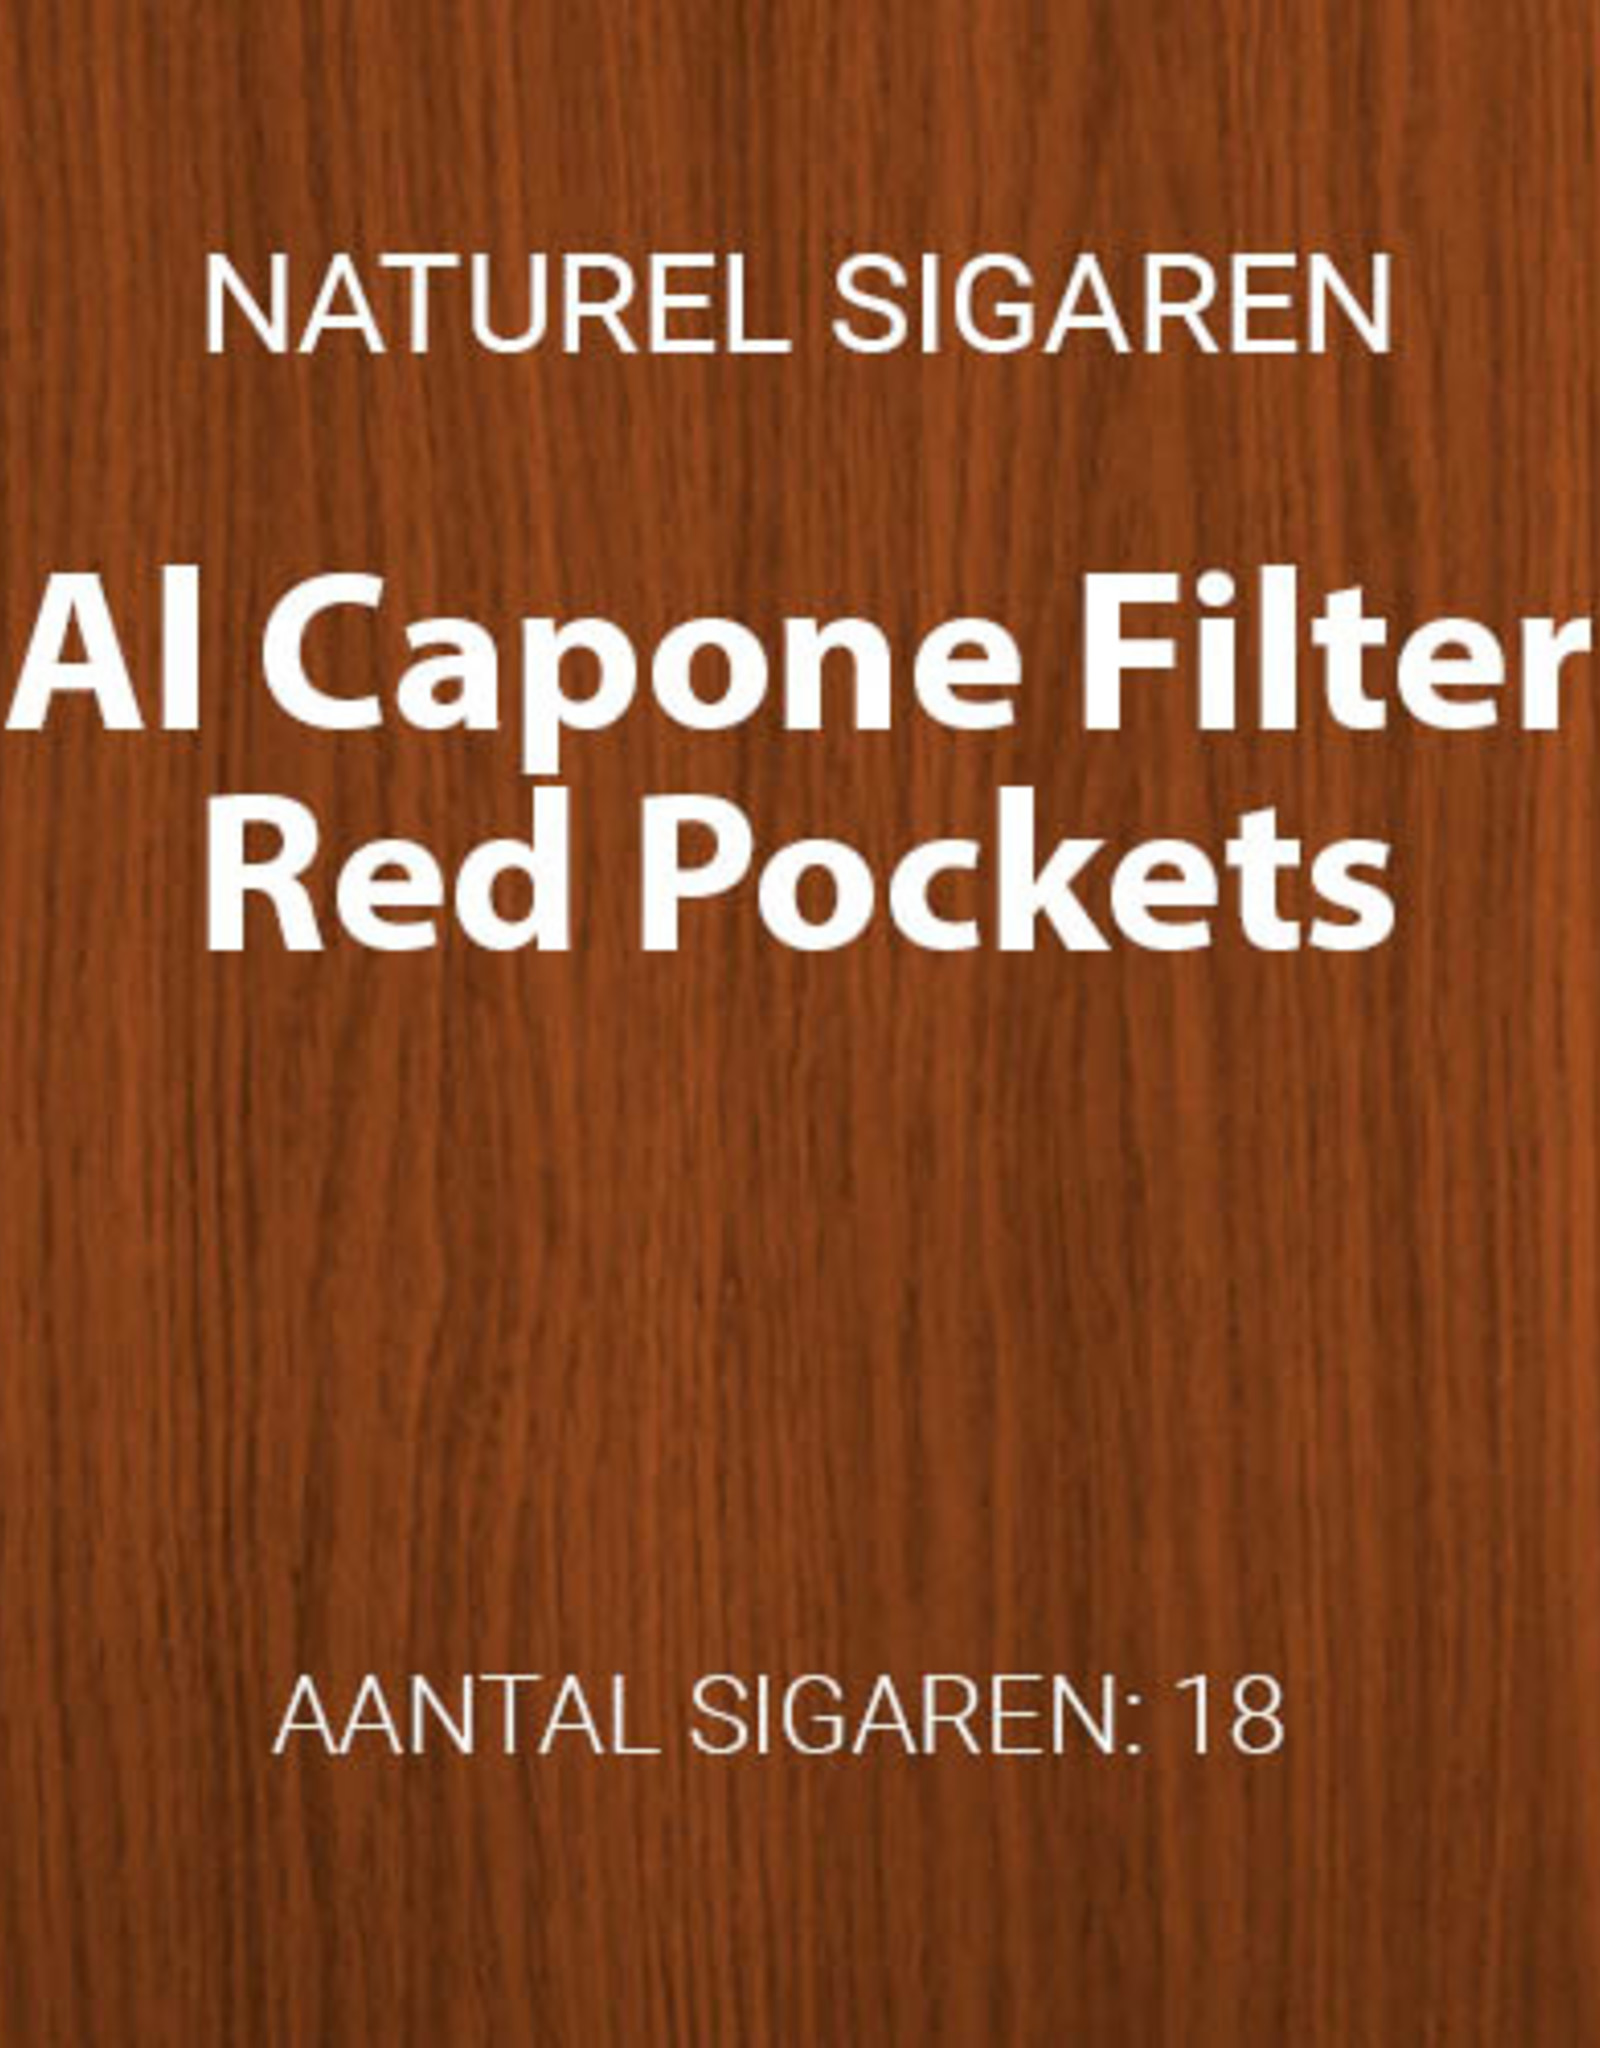 Al Capone Red Pockets filter